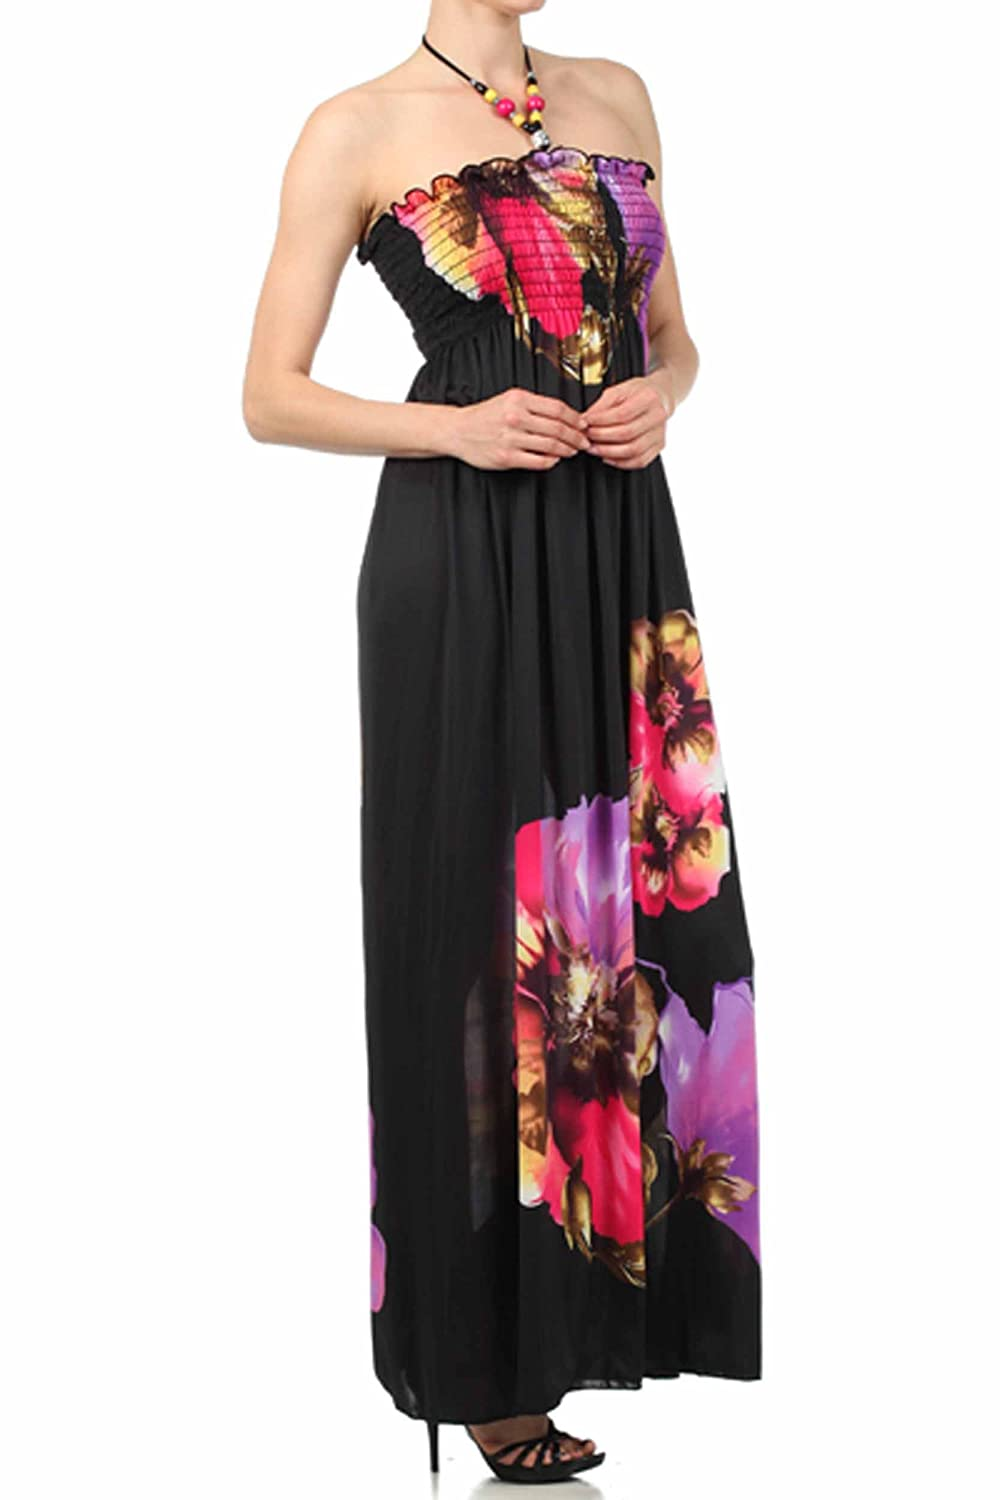 b80b1ae3b1123f Sakkas Floral on Solid Black Graphic Print Beaded Halter Smocked Bodice Long  Maxi Dress (2 Colours)  Amazon.co.uk  Clothing